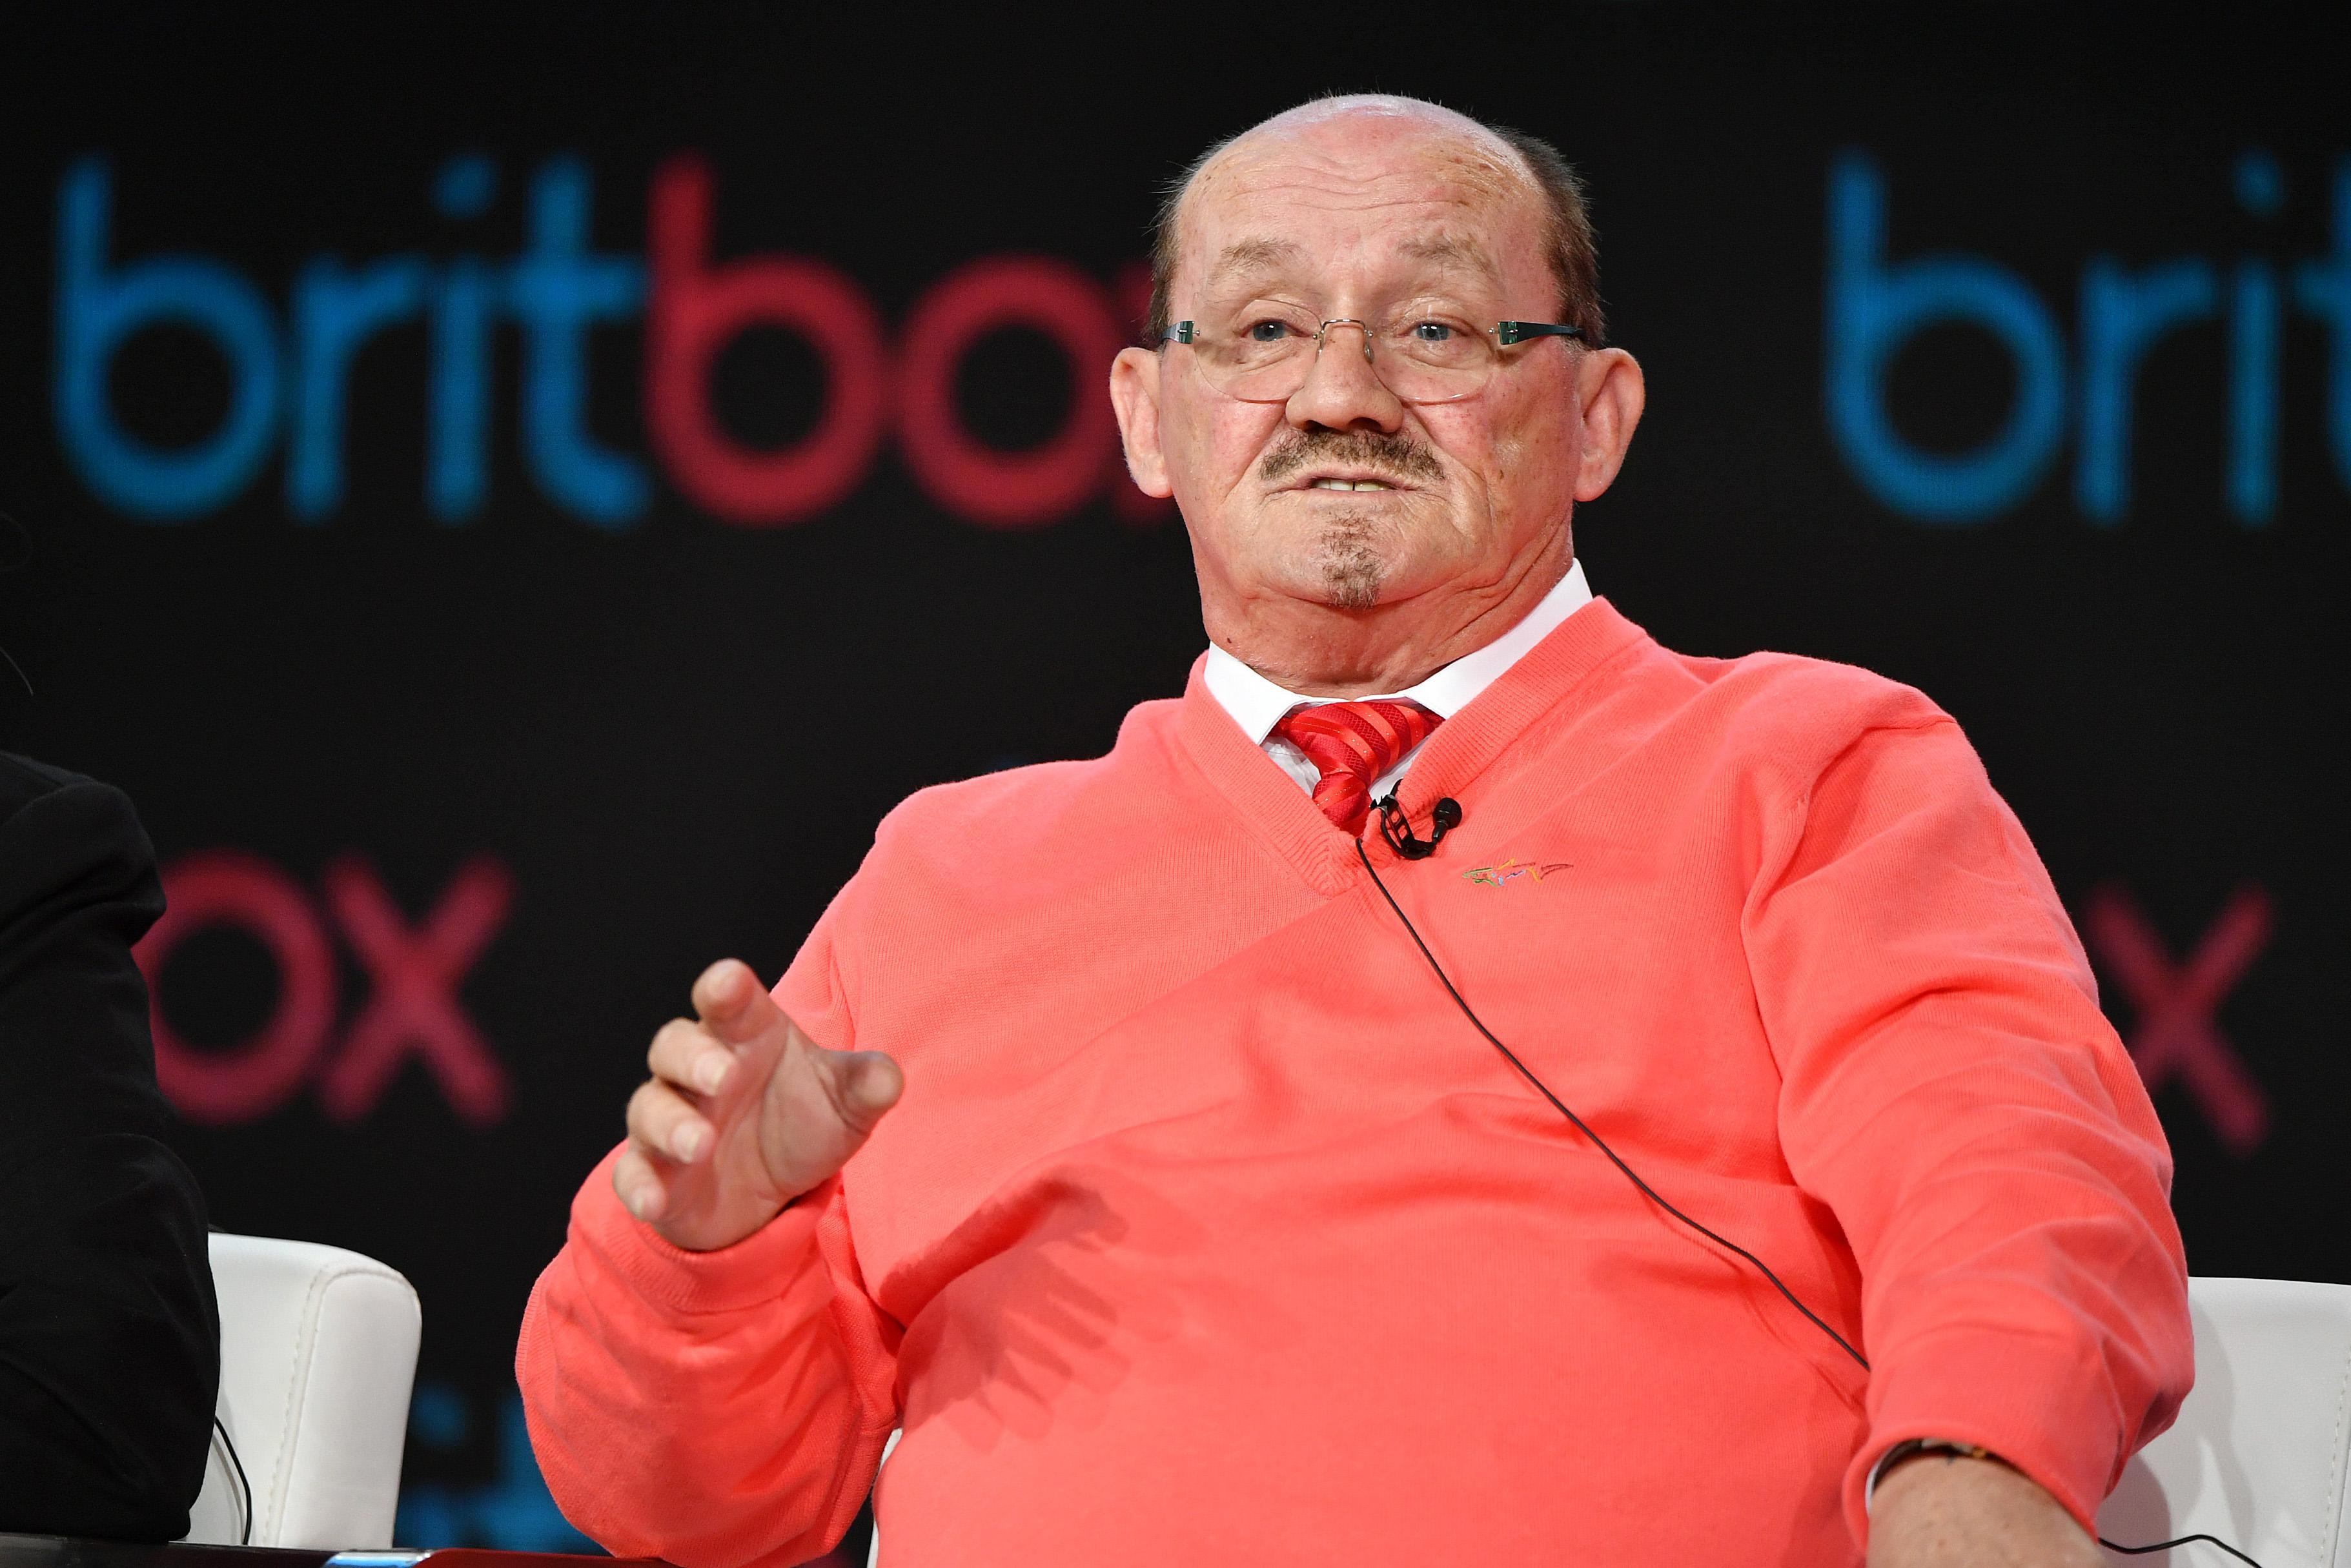 'Mrs Brown's Boys' star Brendan O'Carroll's sister dies after 'hanging on' for him